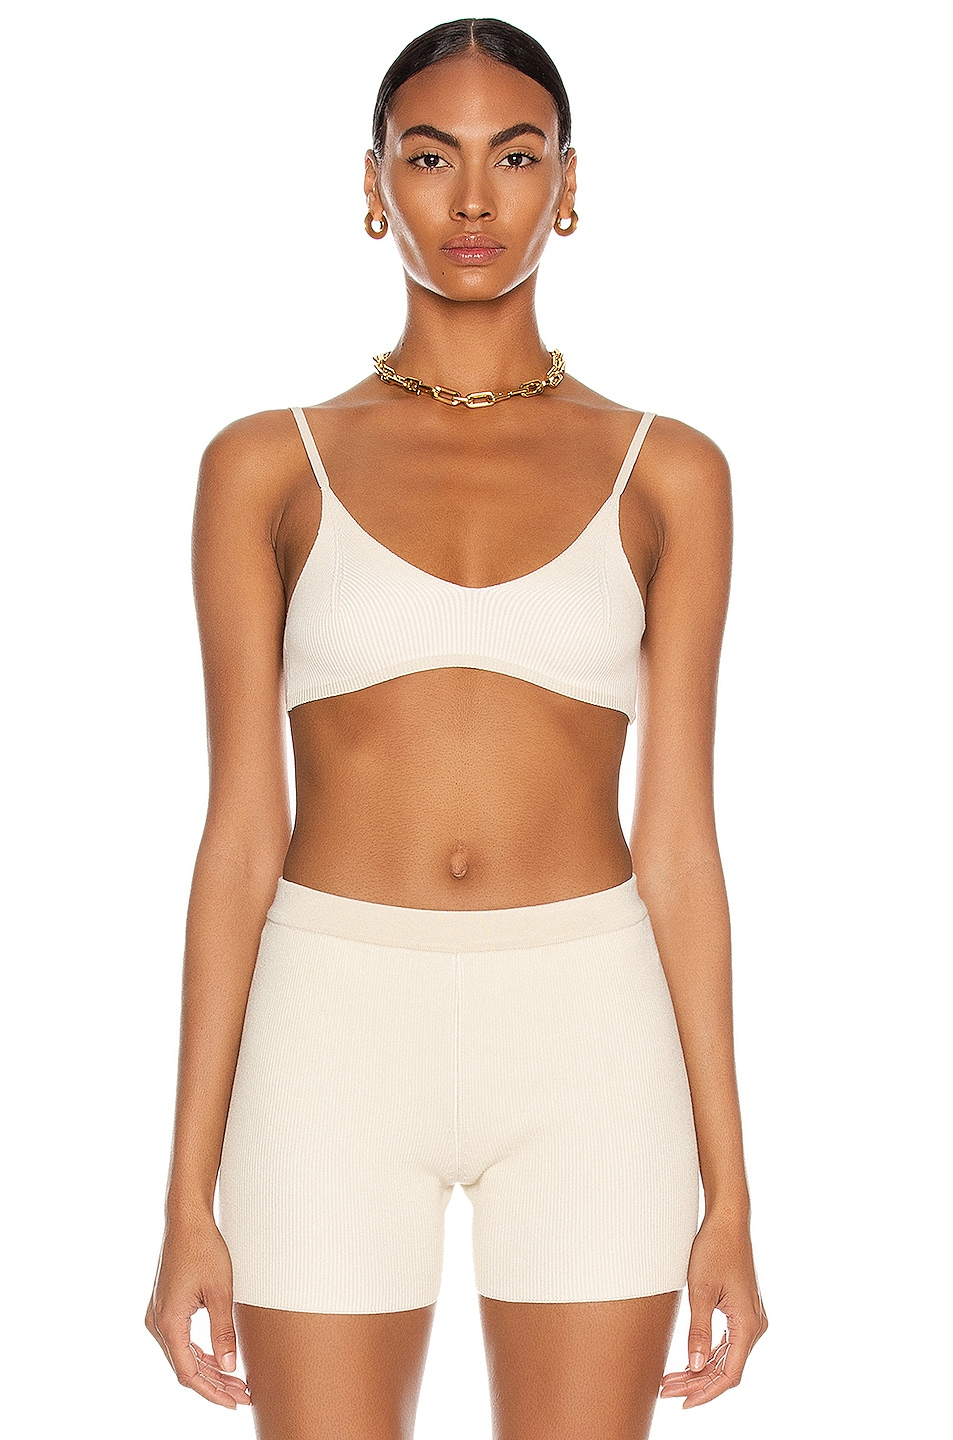 Le Bandeau Valensole by Jacquemus, available on fwrd.com for $155 Hailey Baldwin Top Exact Product